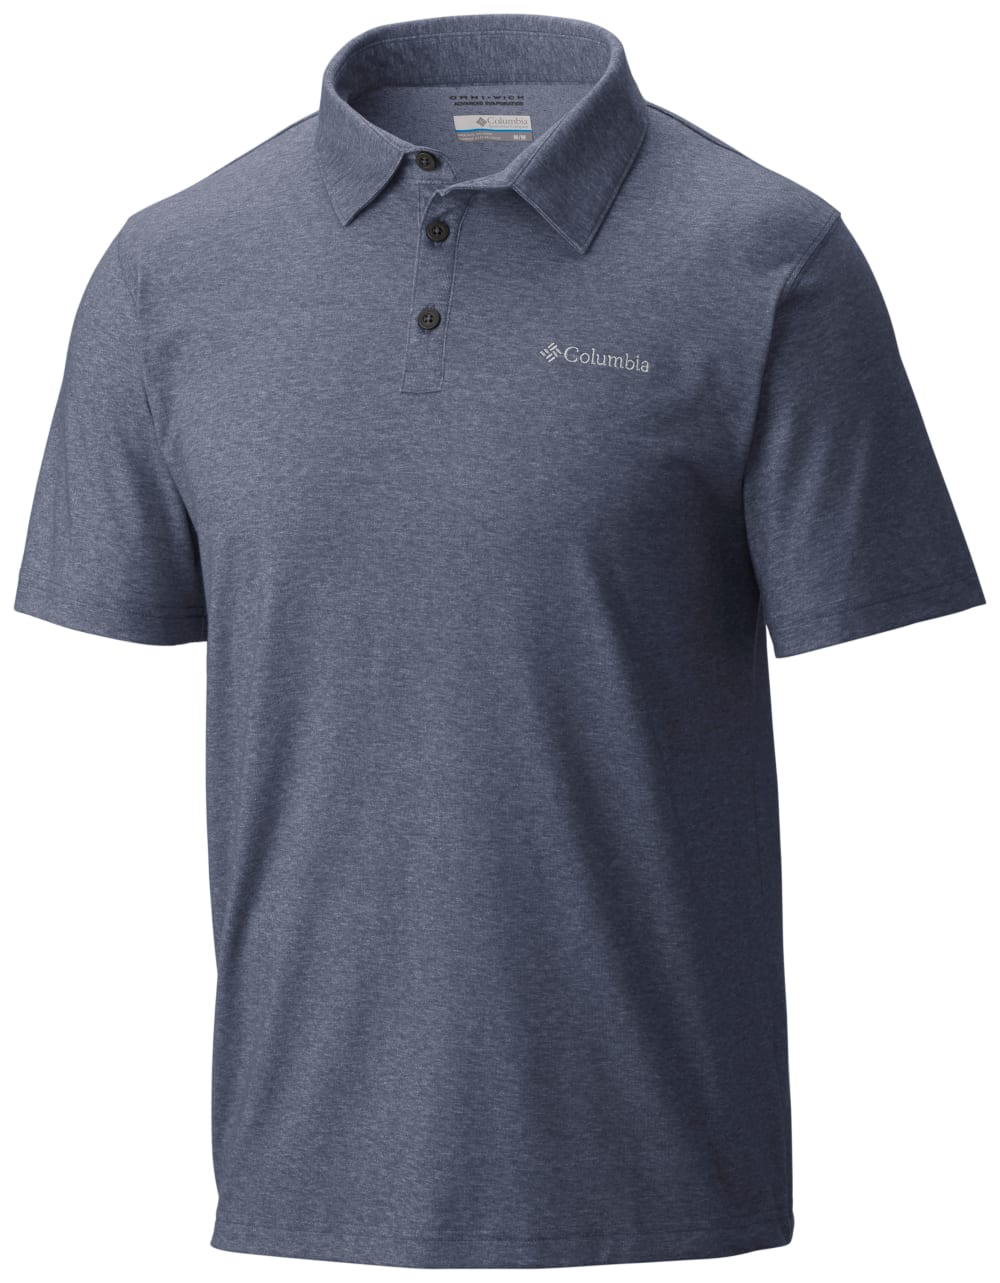 COLUMBIA Men's Thistletown Park™ Polo II - NOCTURNAL HTR-591